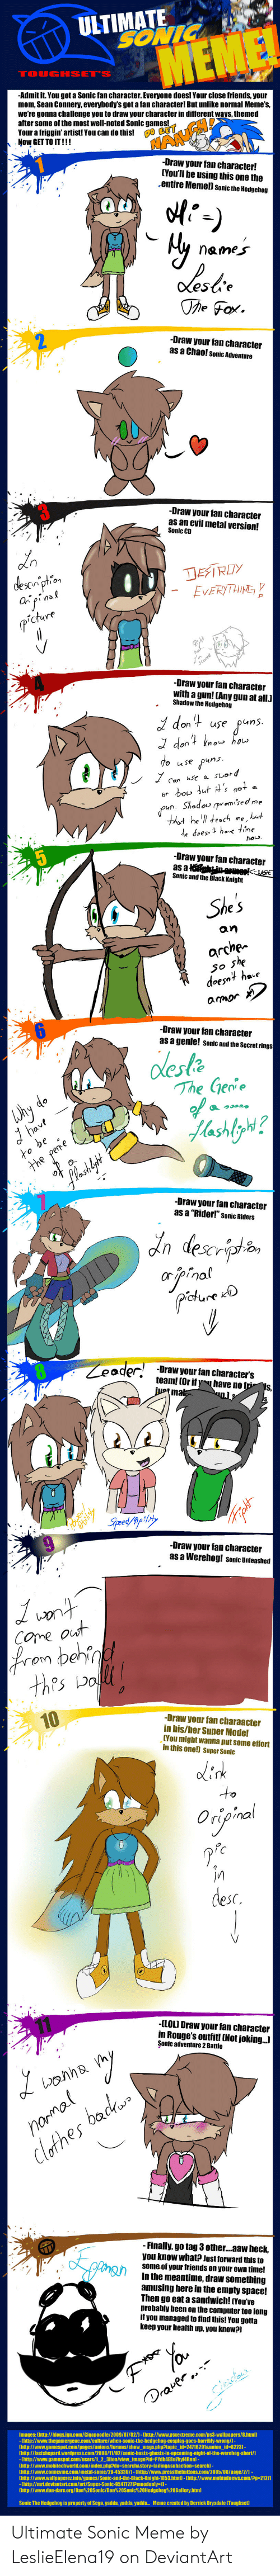 Werehog: ULTIMATE  an characterl But  the mest well dSonic  Maw GET TO ITI!  Draw your tan character  เทพ'll be using this one the  entire Memellah  names  Draw your tan character  Draw your tan character  as an evil metal version  Draw your lan character  with a gun! [Any gun atall.l  raw your ian character  an  arche-  amor  -Draw your lan character  as a genie!  oesla  The Gerv  Draw your tan character  Draw your tan characters  -Draw your lan character  as a Werehog sased  Draw your ftan charaacter  in his/her Super Made  des  ILOU Draw your fan character  inally.go tag 3 otheraawheck  ou know what?Justlerward his  In the meantime, draw something  amusing here in the empty space!  Then go eat a sandwichl u Ultimate Sonic Meme by LeslieElena19 on DeviantArt